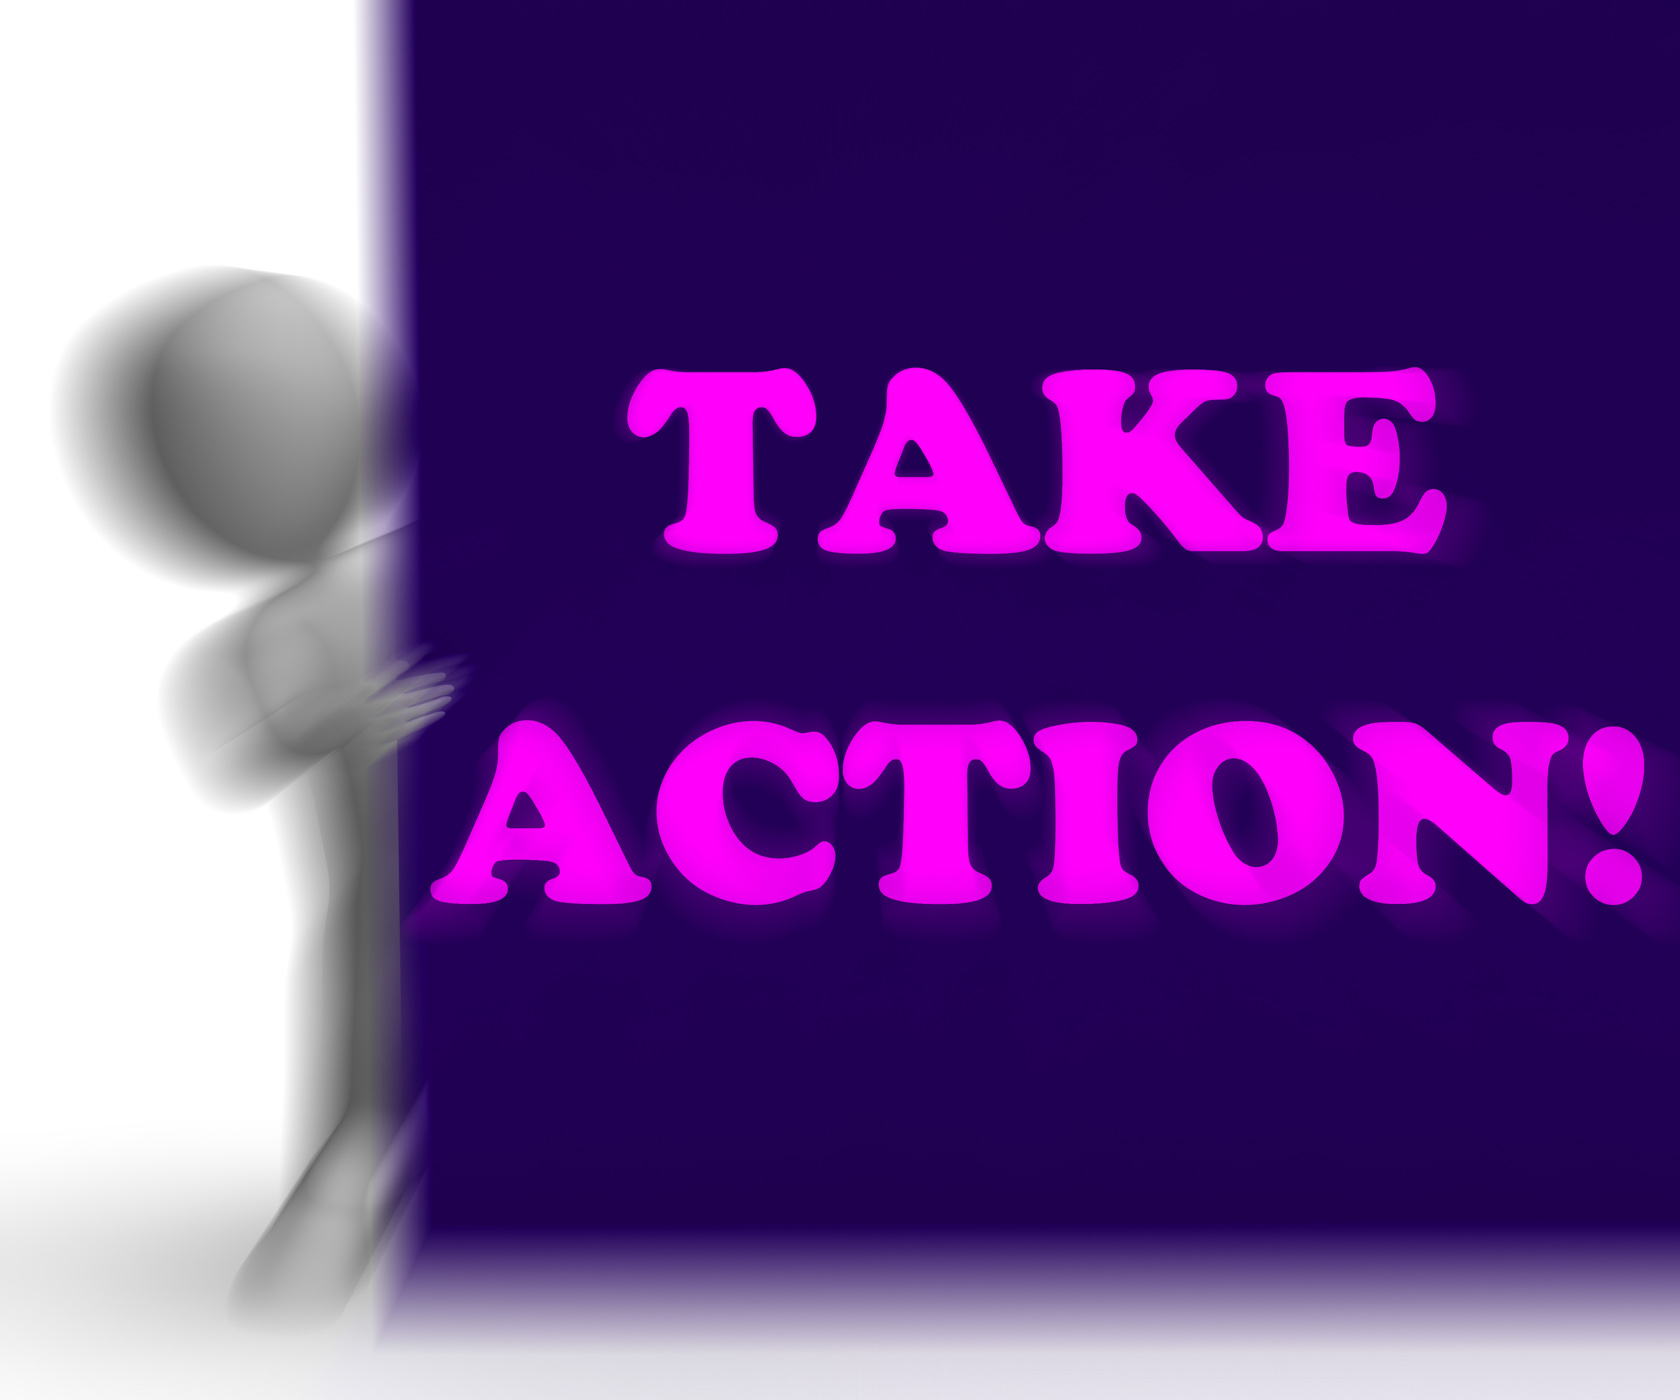 Take action placard shows inspirational encouragement photo